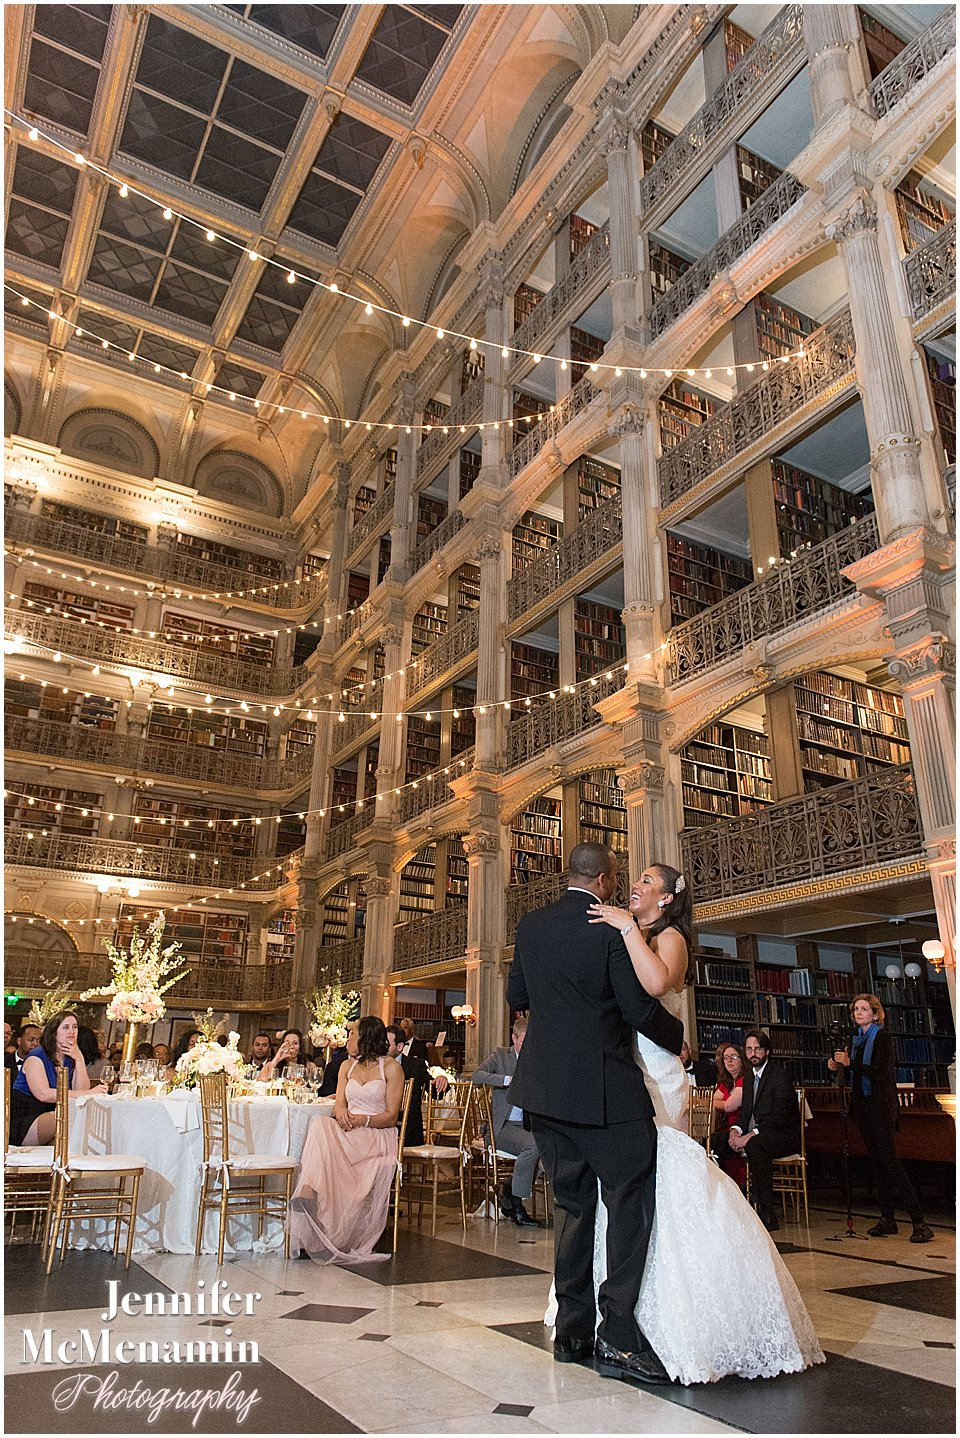 083-Peabody-Library-Wedding_WilsonPatterson_03323-0728_Jennifer-McMenamin-Photography